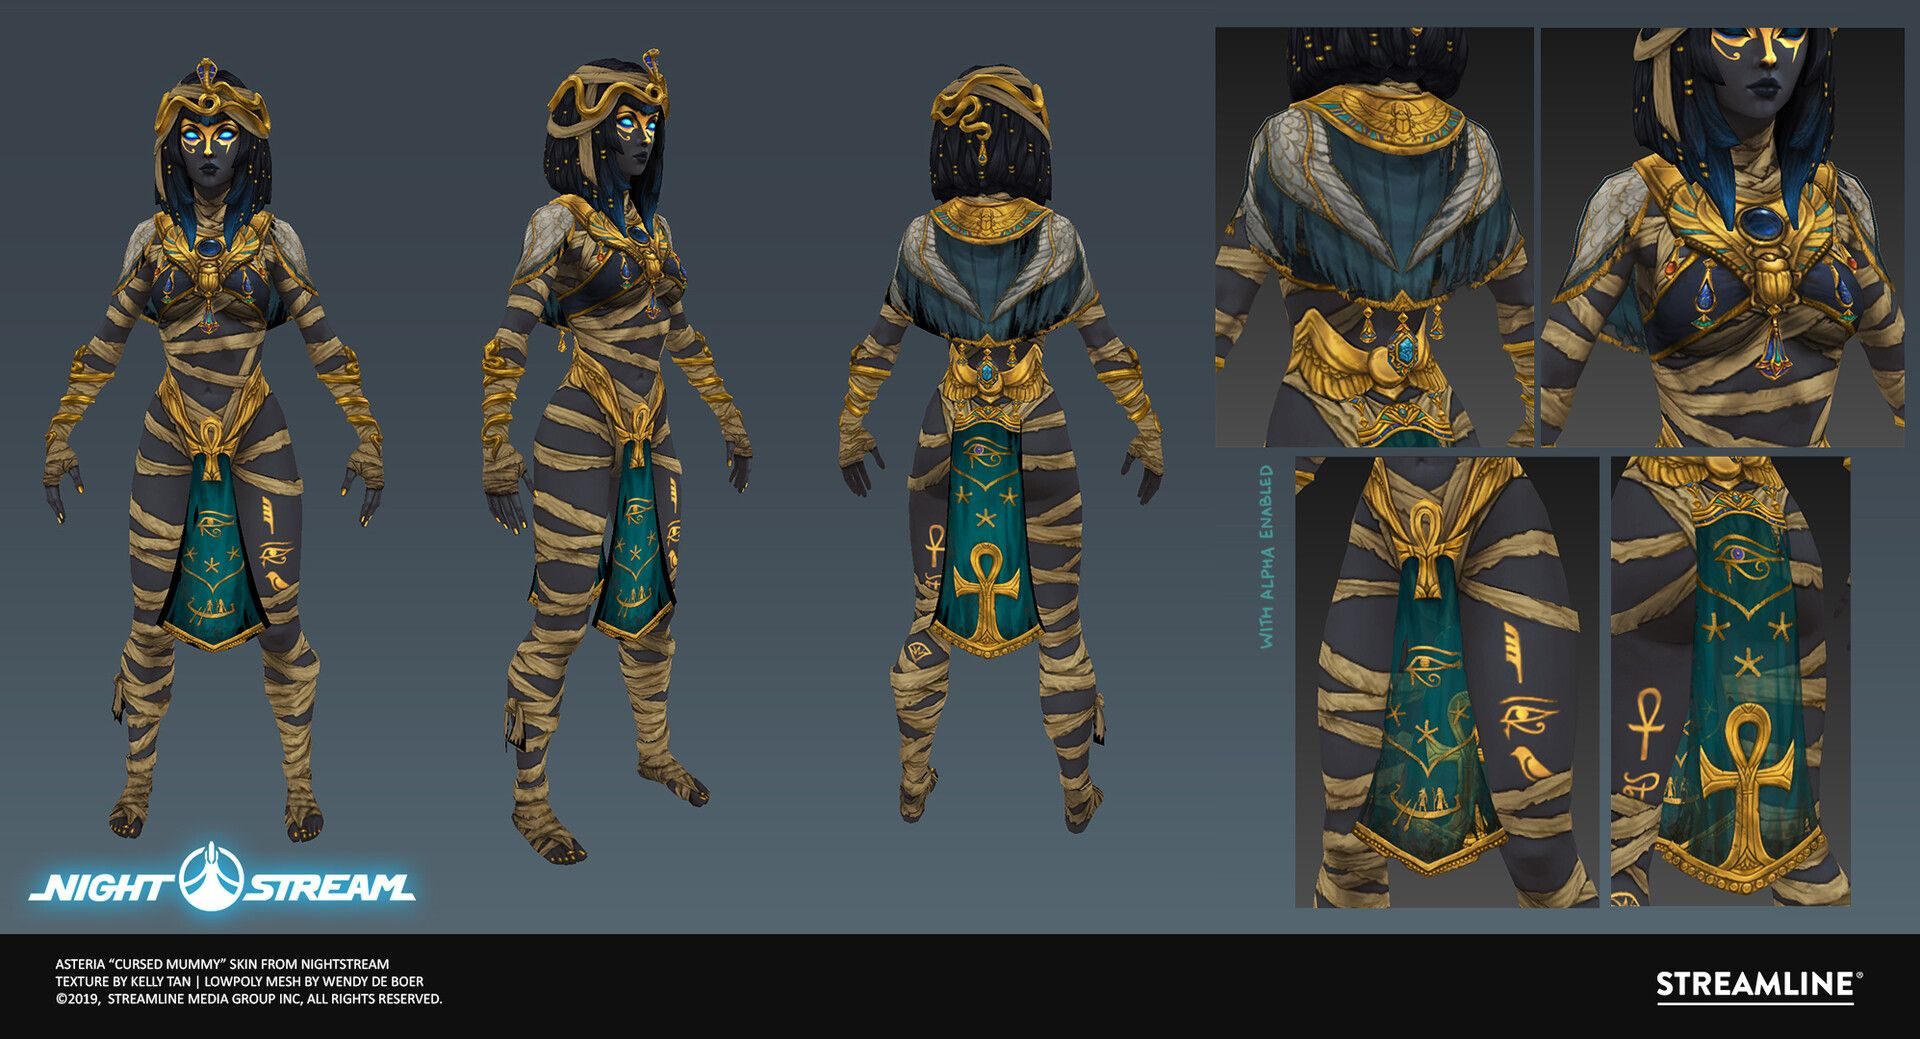 Nightstream Asteria Cursed Mummy Texture By Kelly Tanmade As A Halloween Skin Last Year Handpainted Texture Without Highpoly Texture Asteria Hand Painted